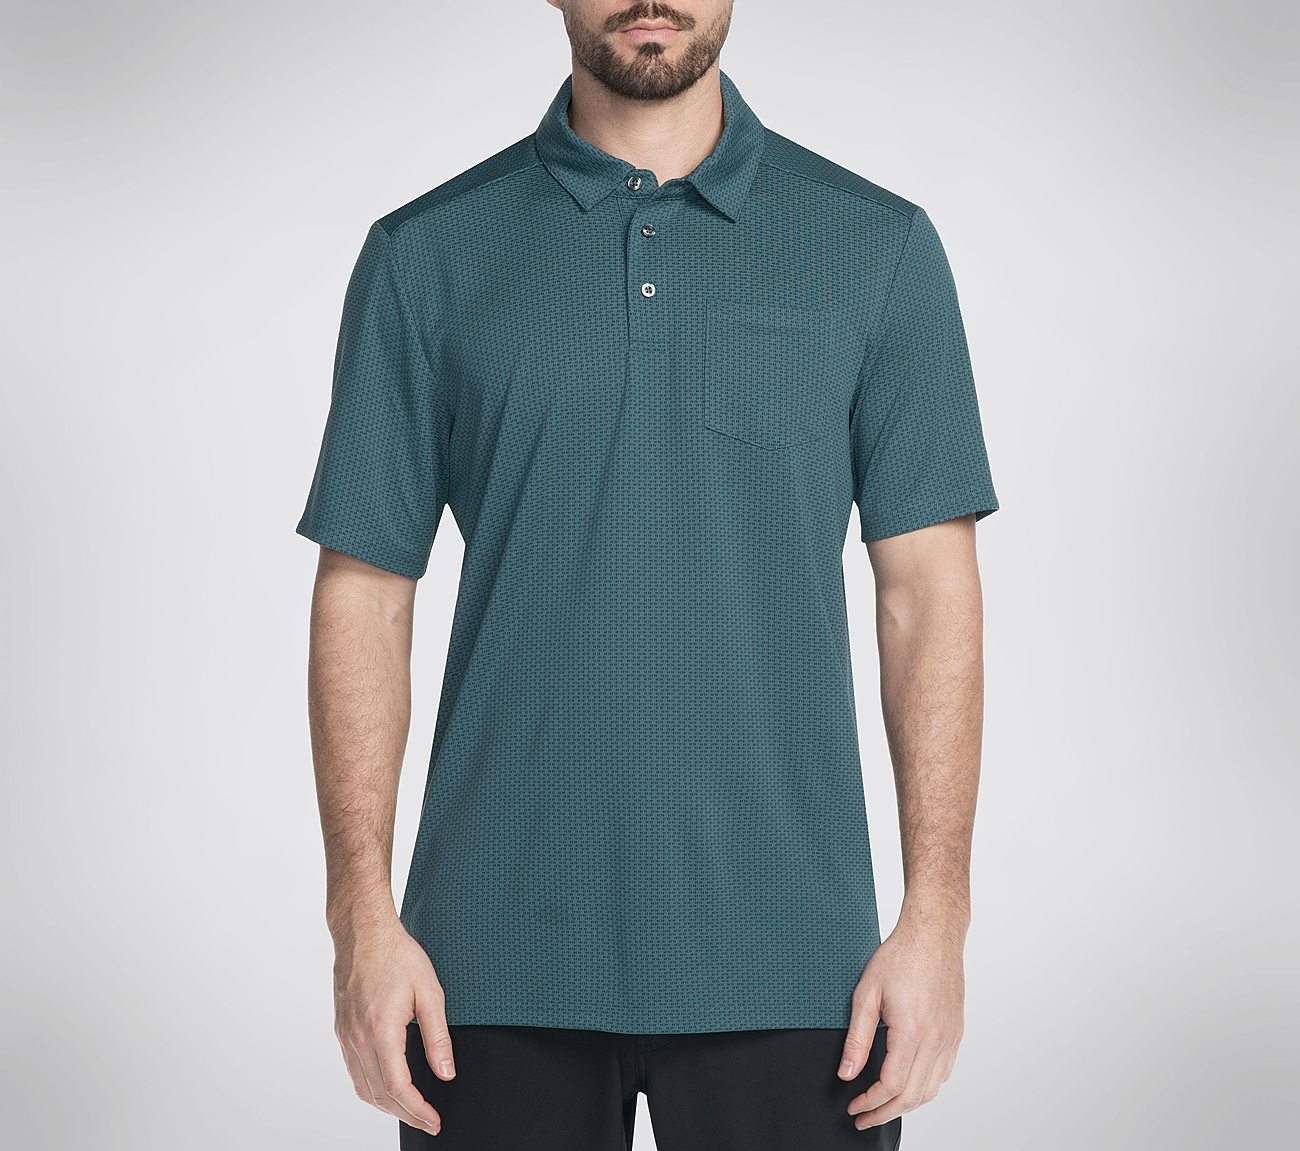 Skechers GO GOLF Sawgrass Polo Shirt